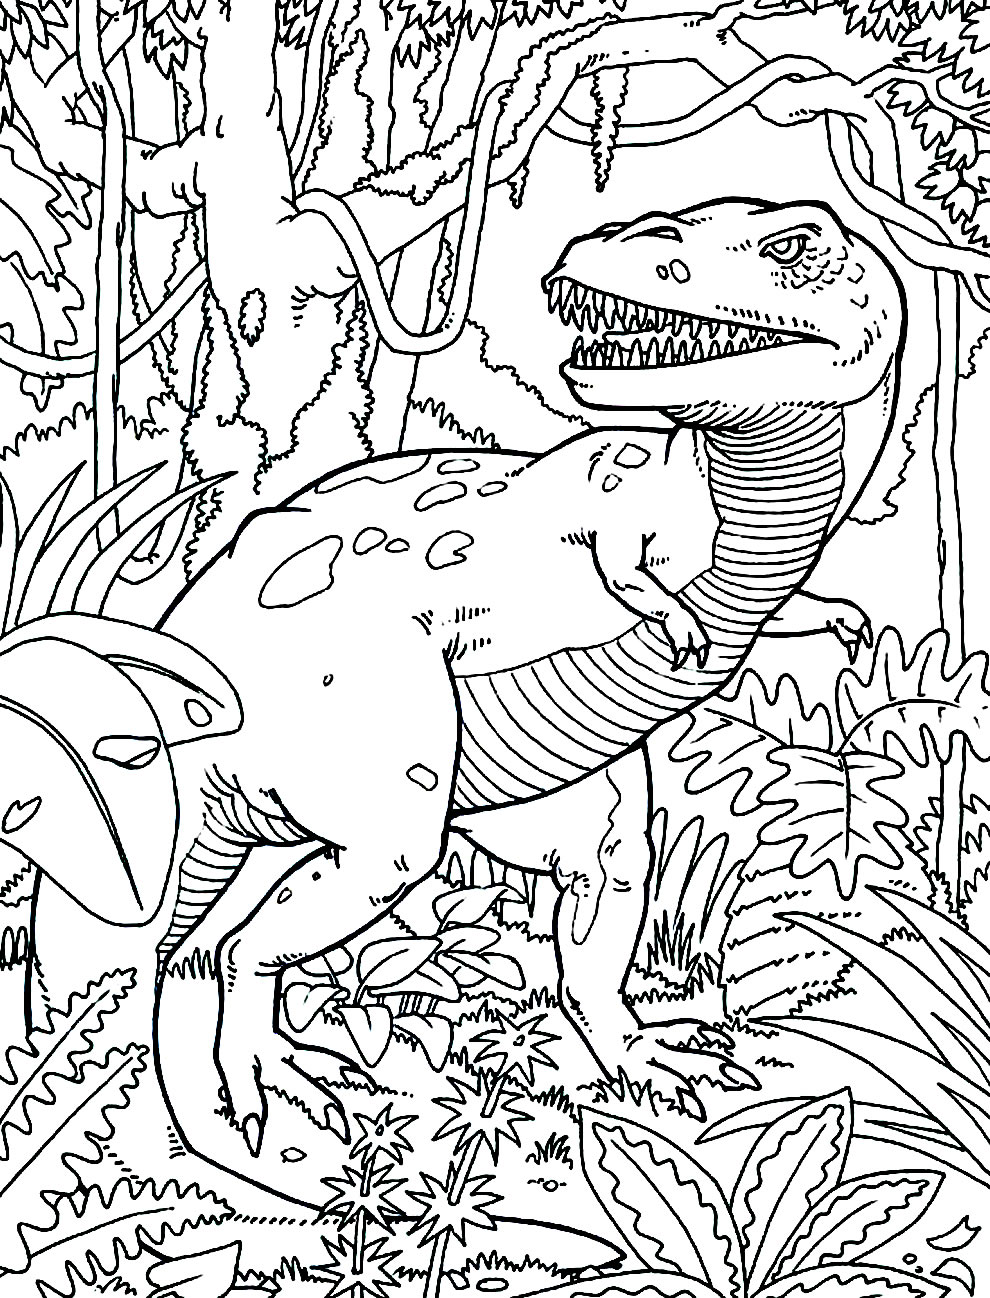 T-Rex drawing for coloring and printing